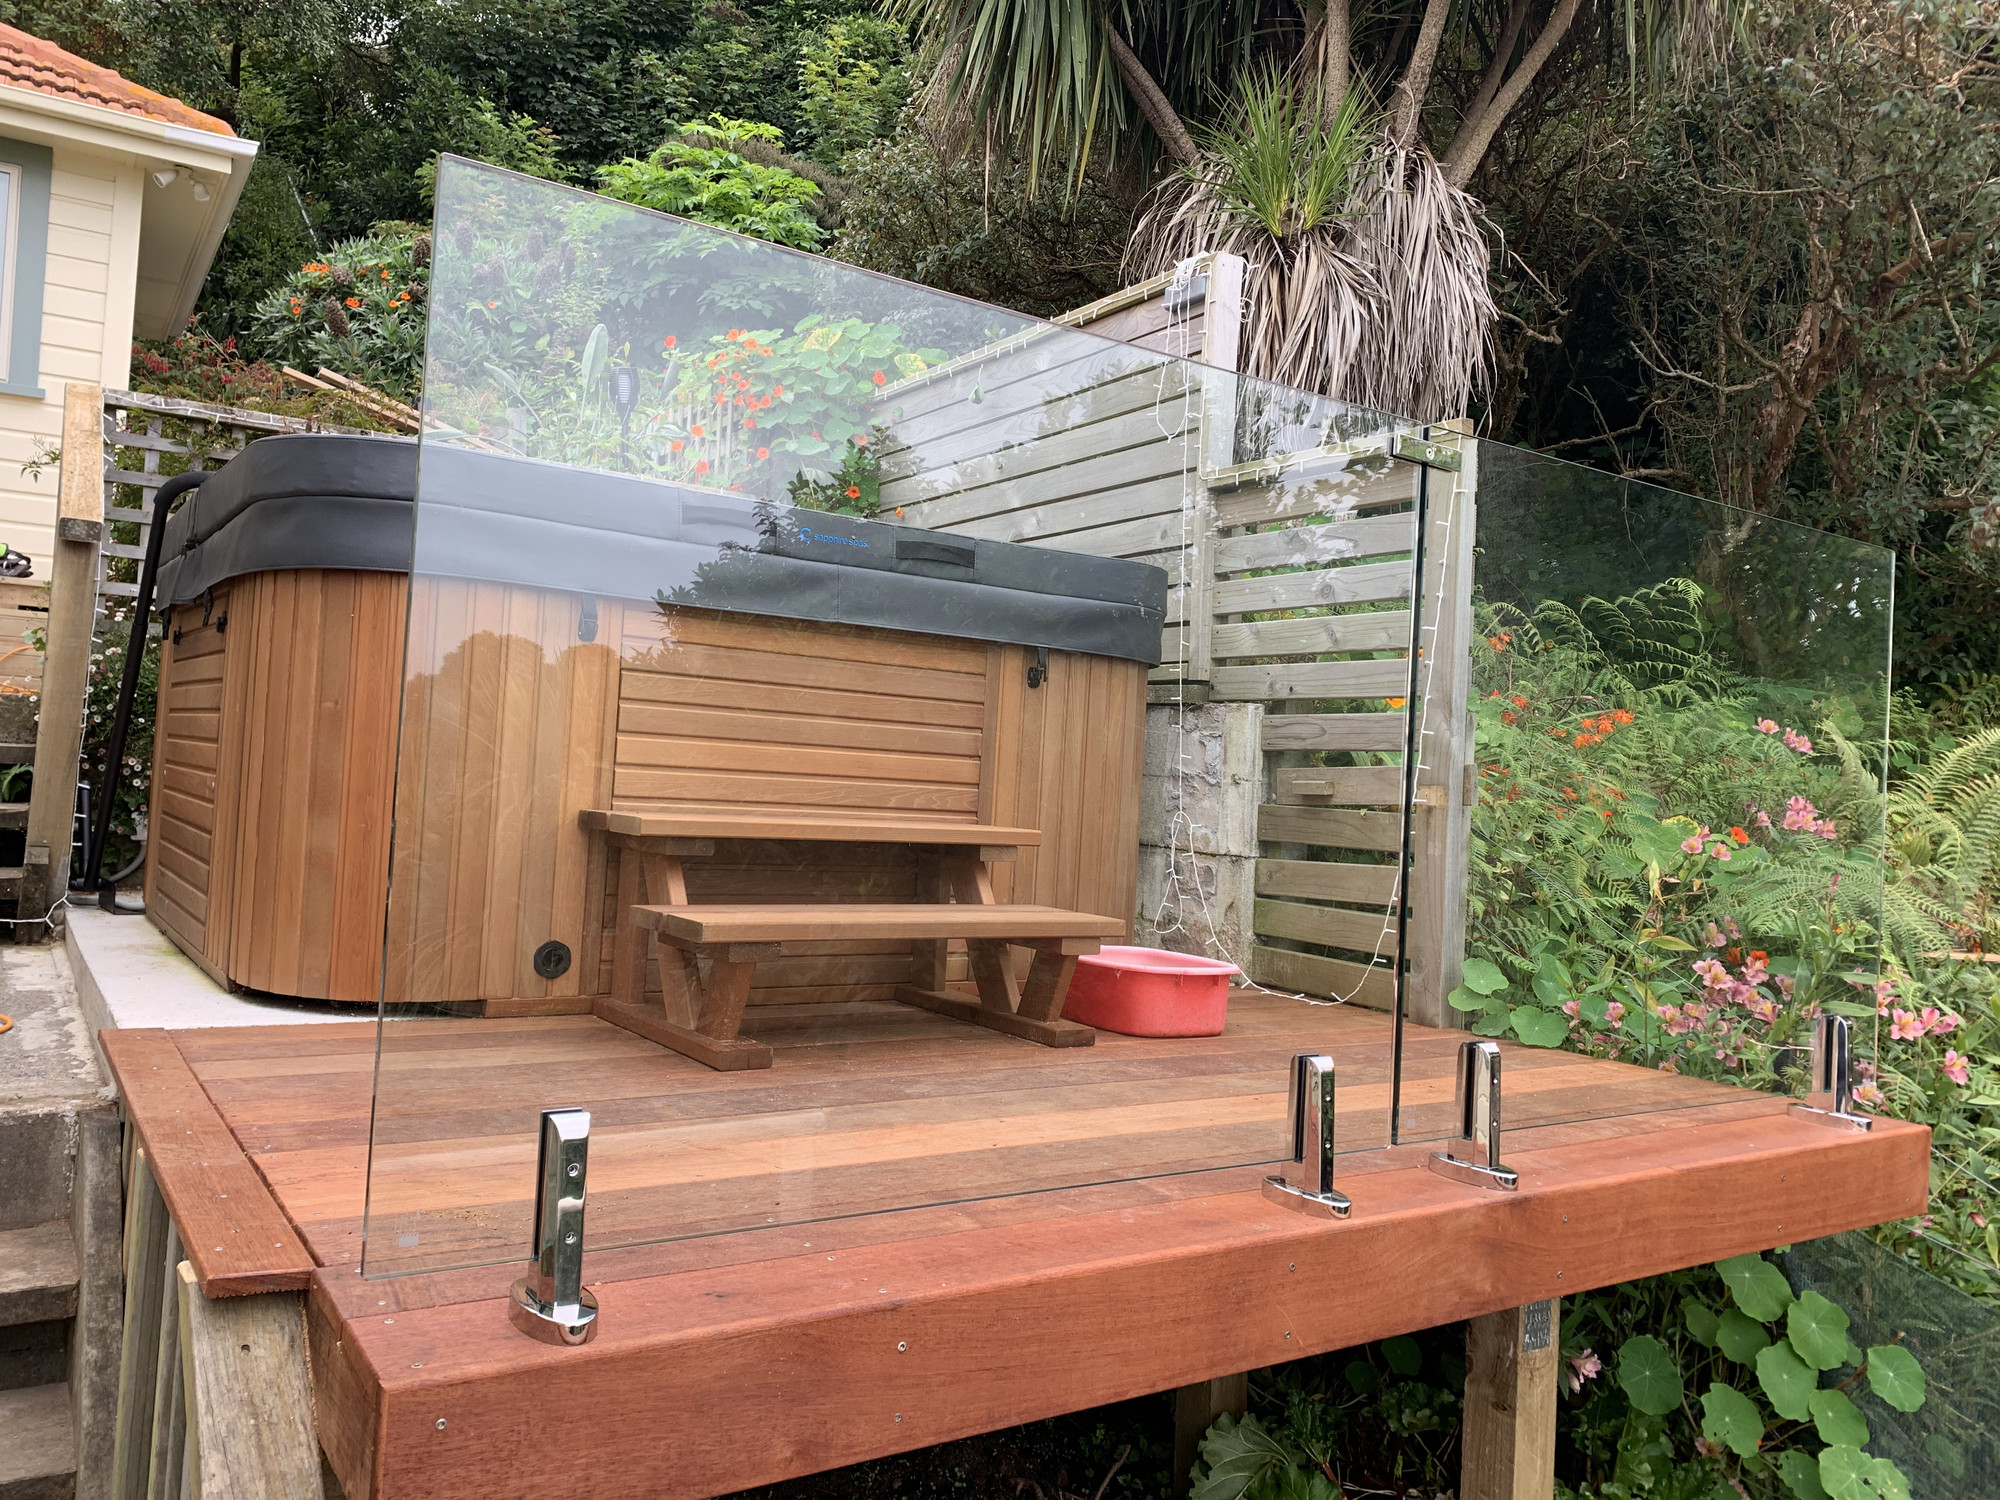 Spa area with decking and glass safety screen